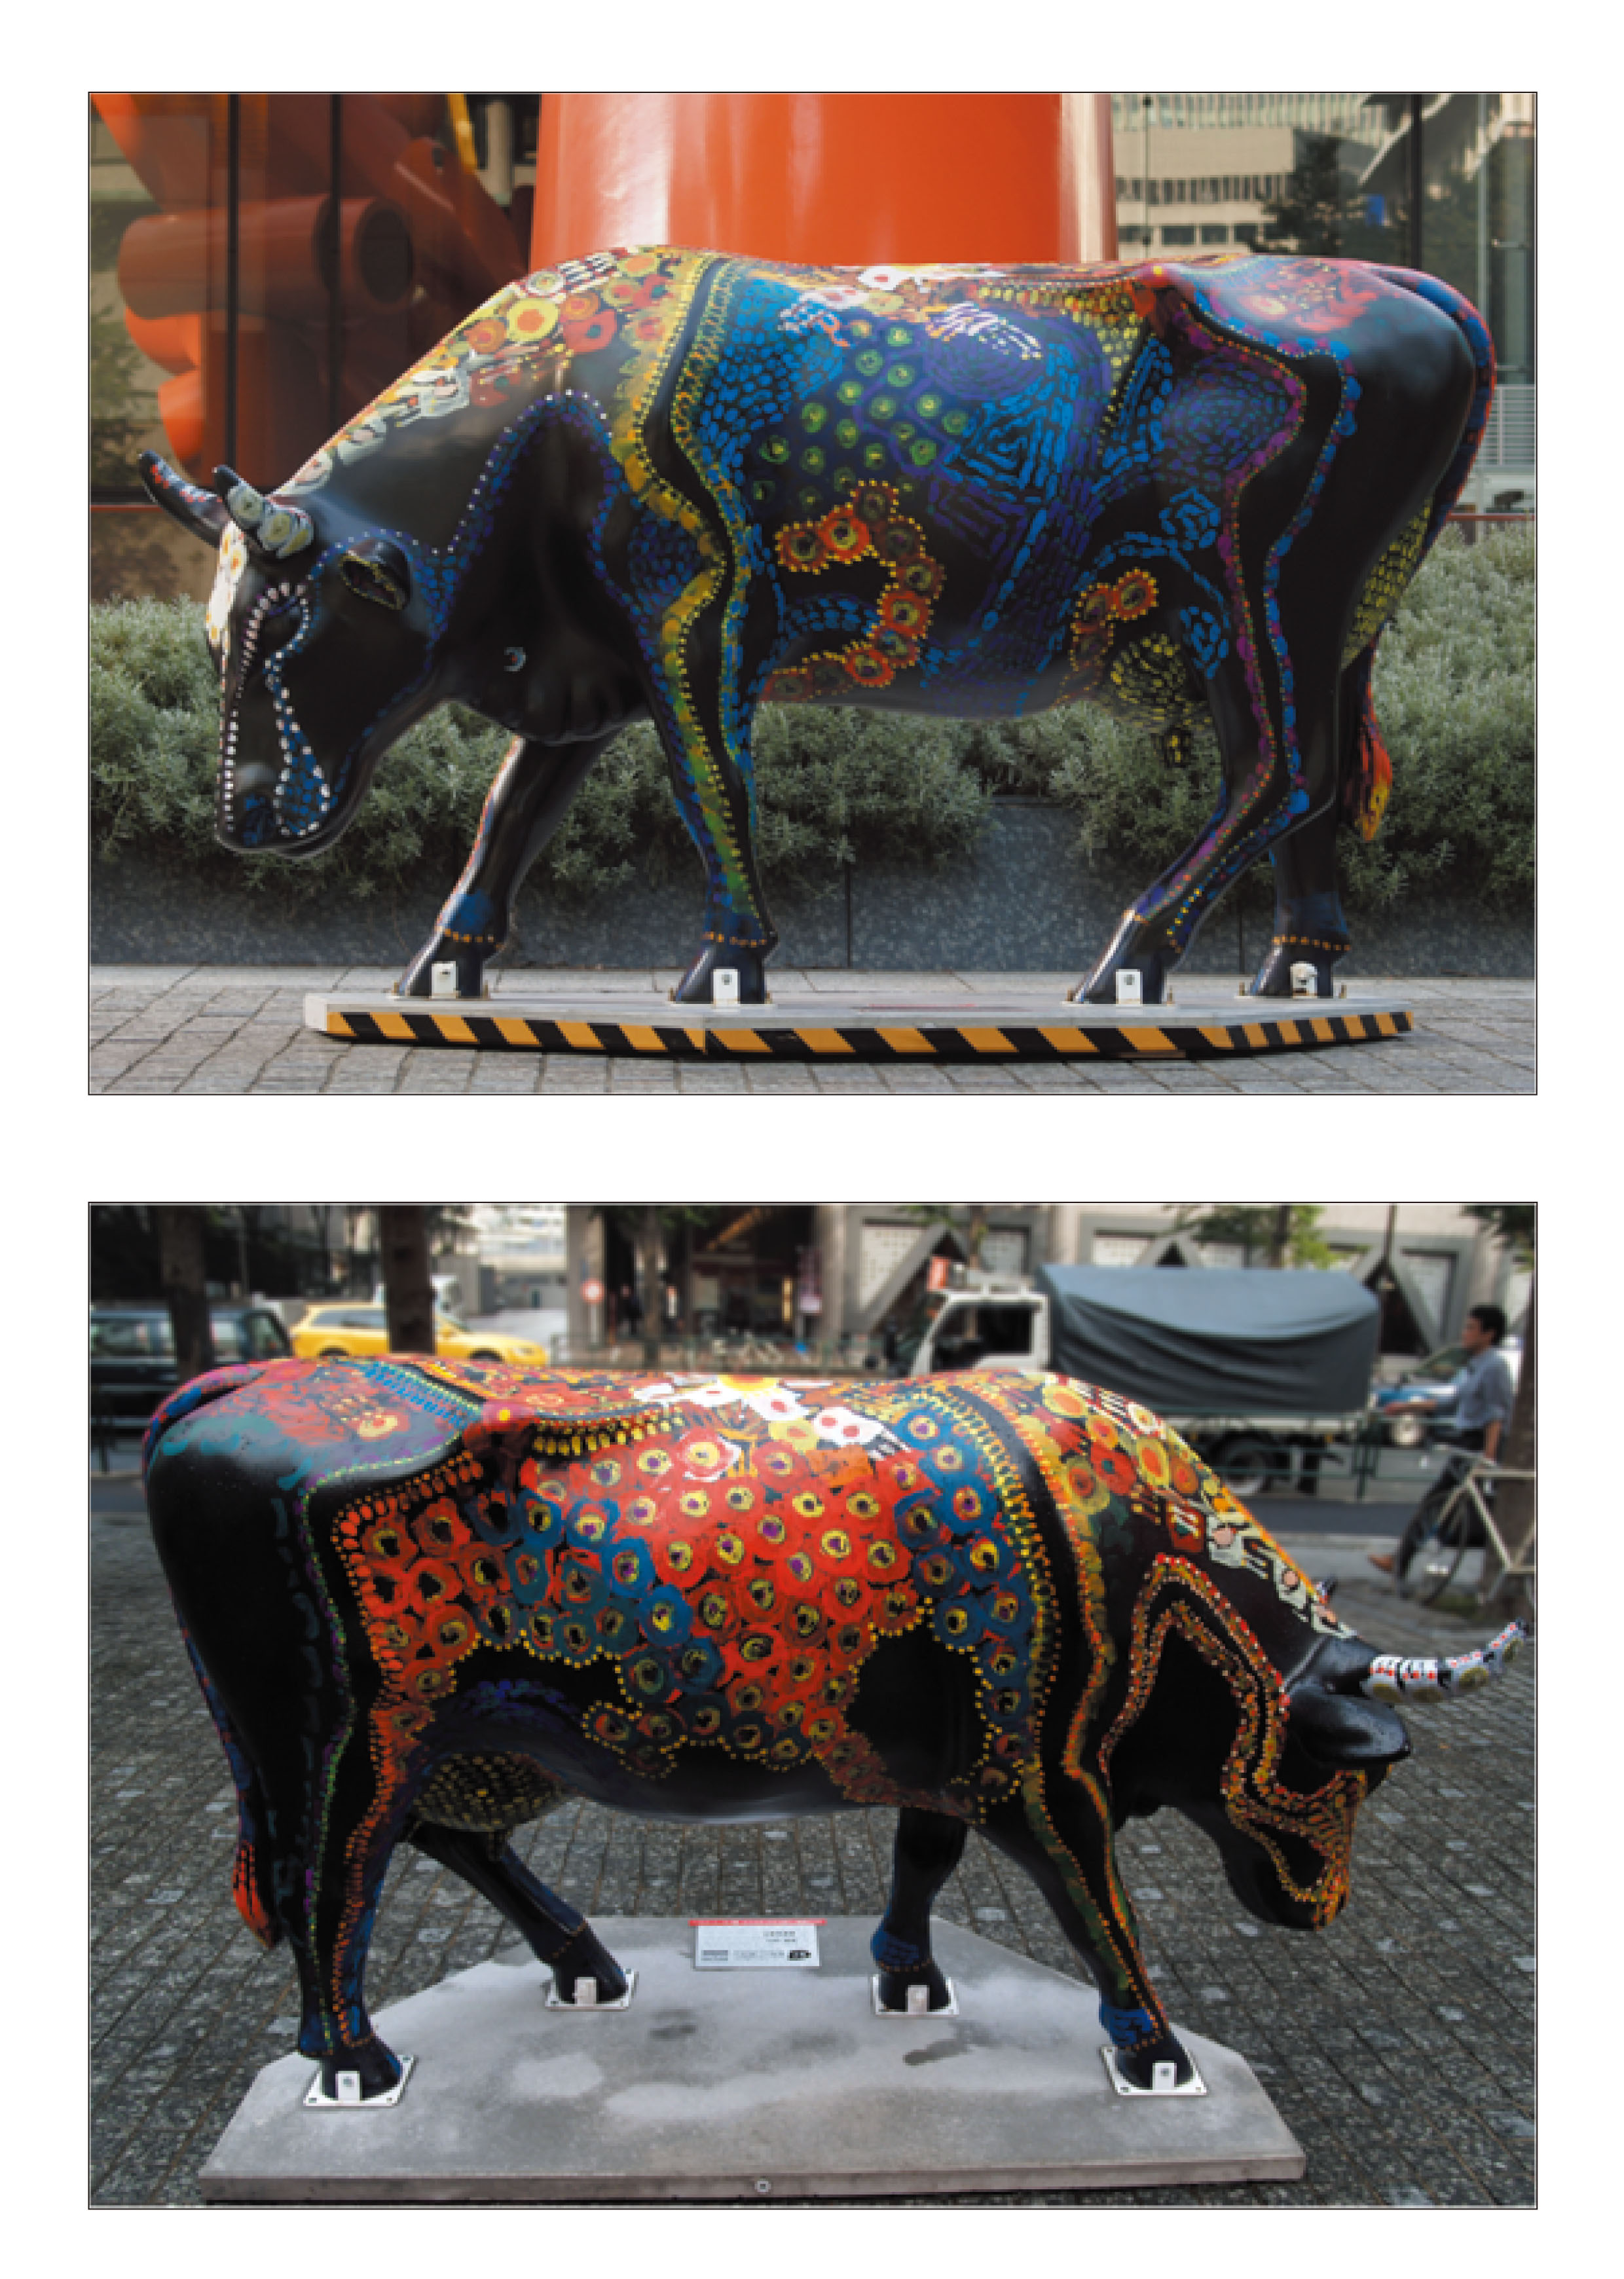 cow parade in 丸の内